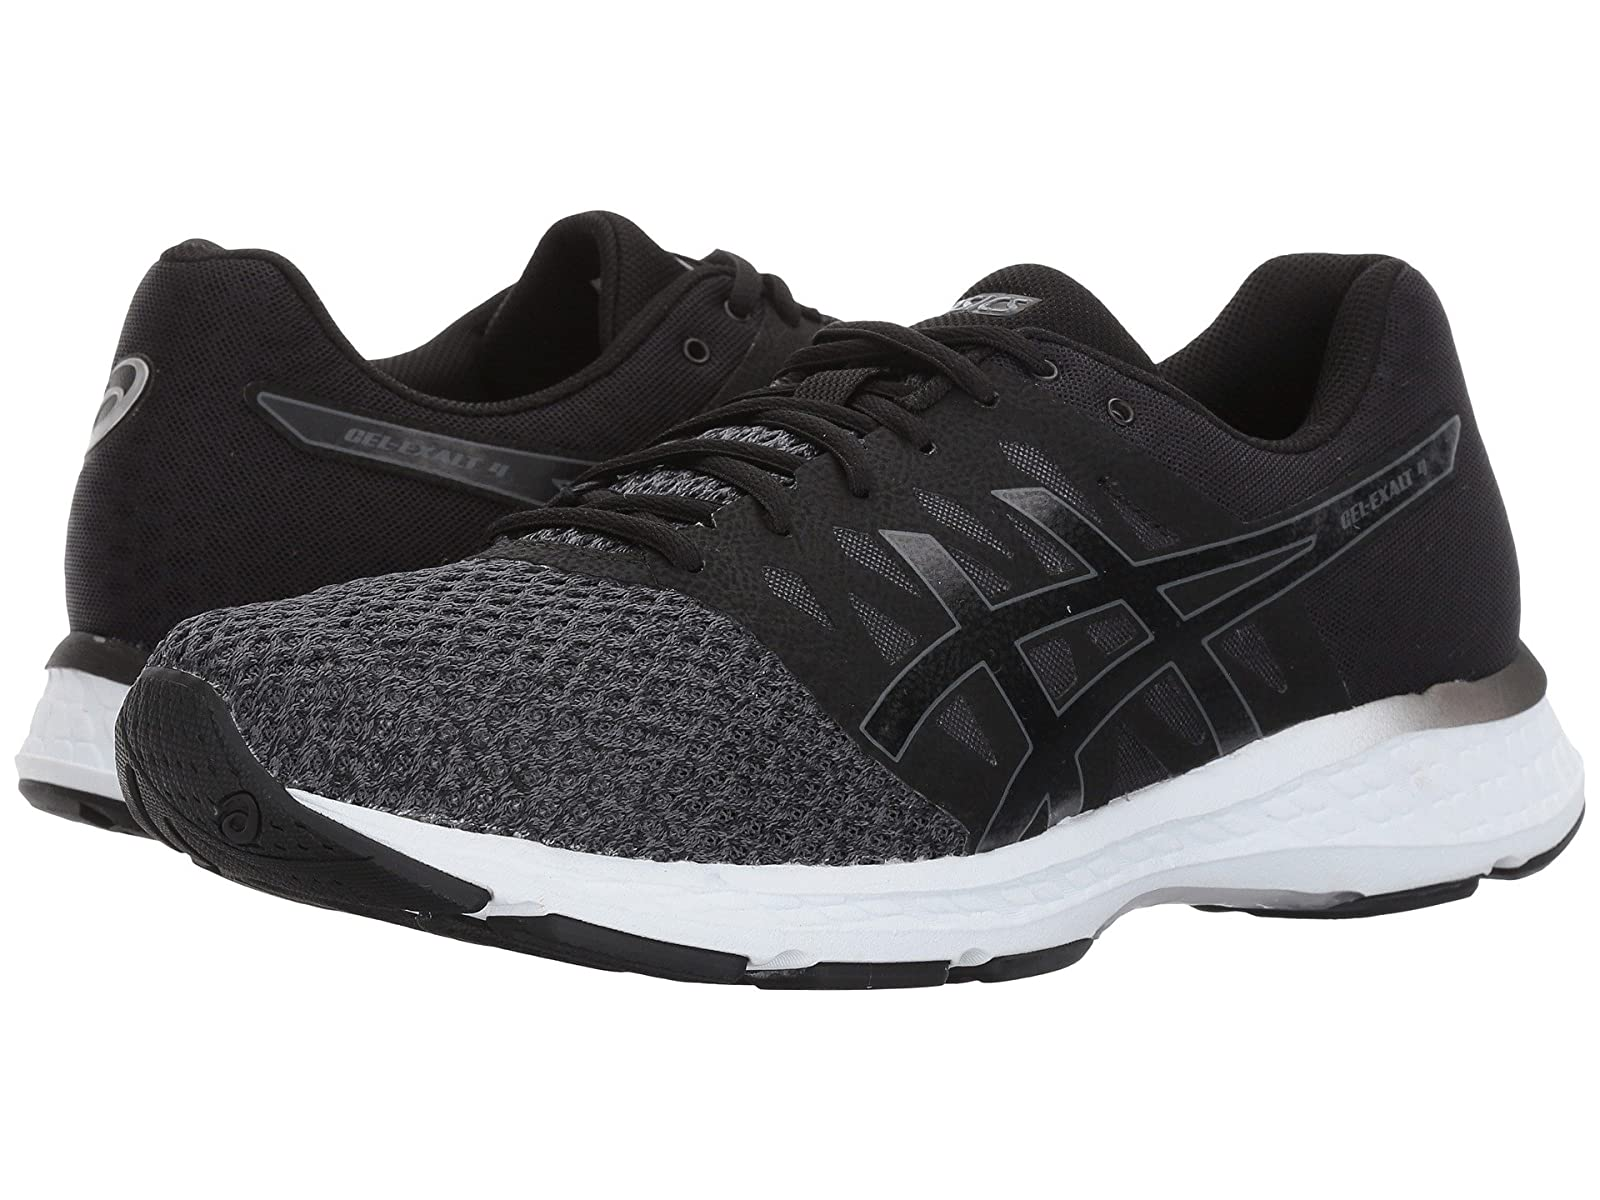 ASICS GEL-Exalt 4Atmospheric grades have affordable shoes